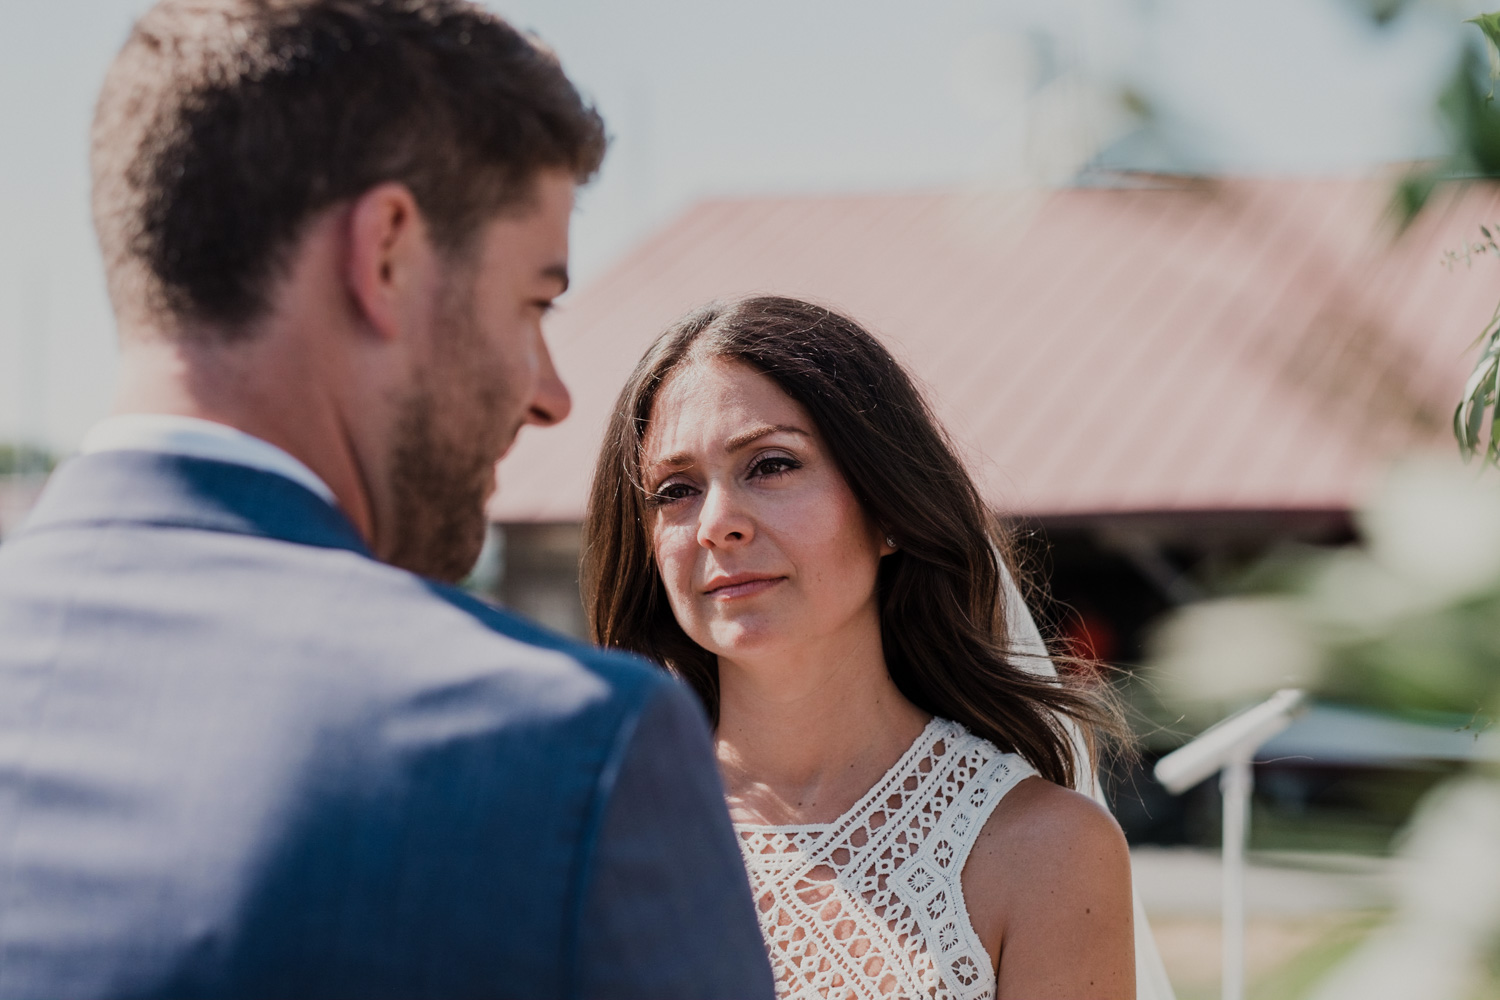 bride looks lovingly at groom during wedding ceremony